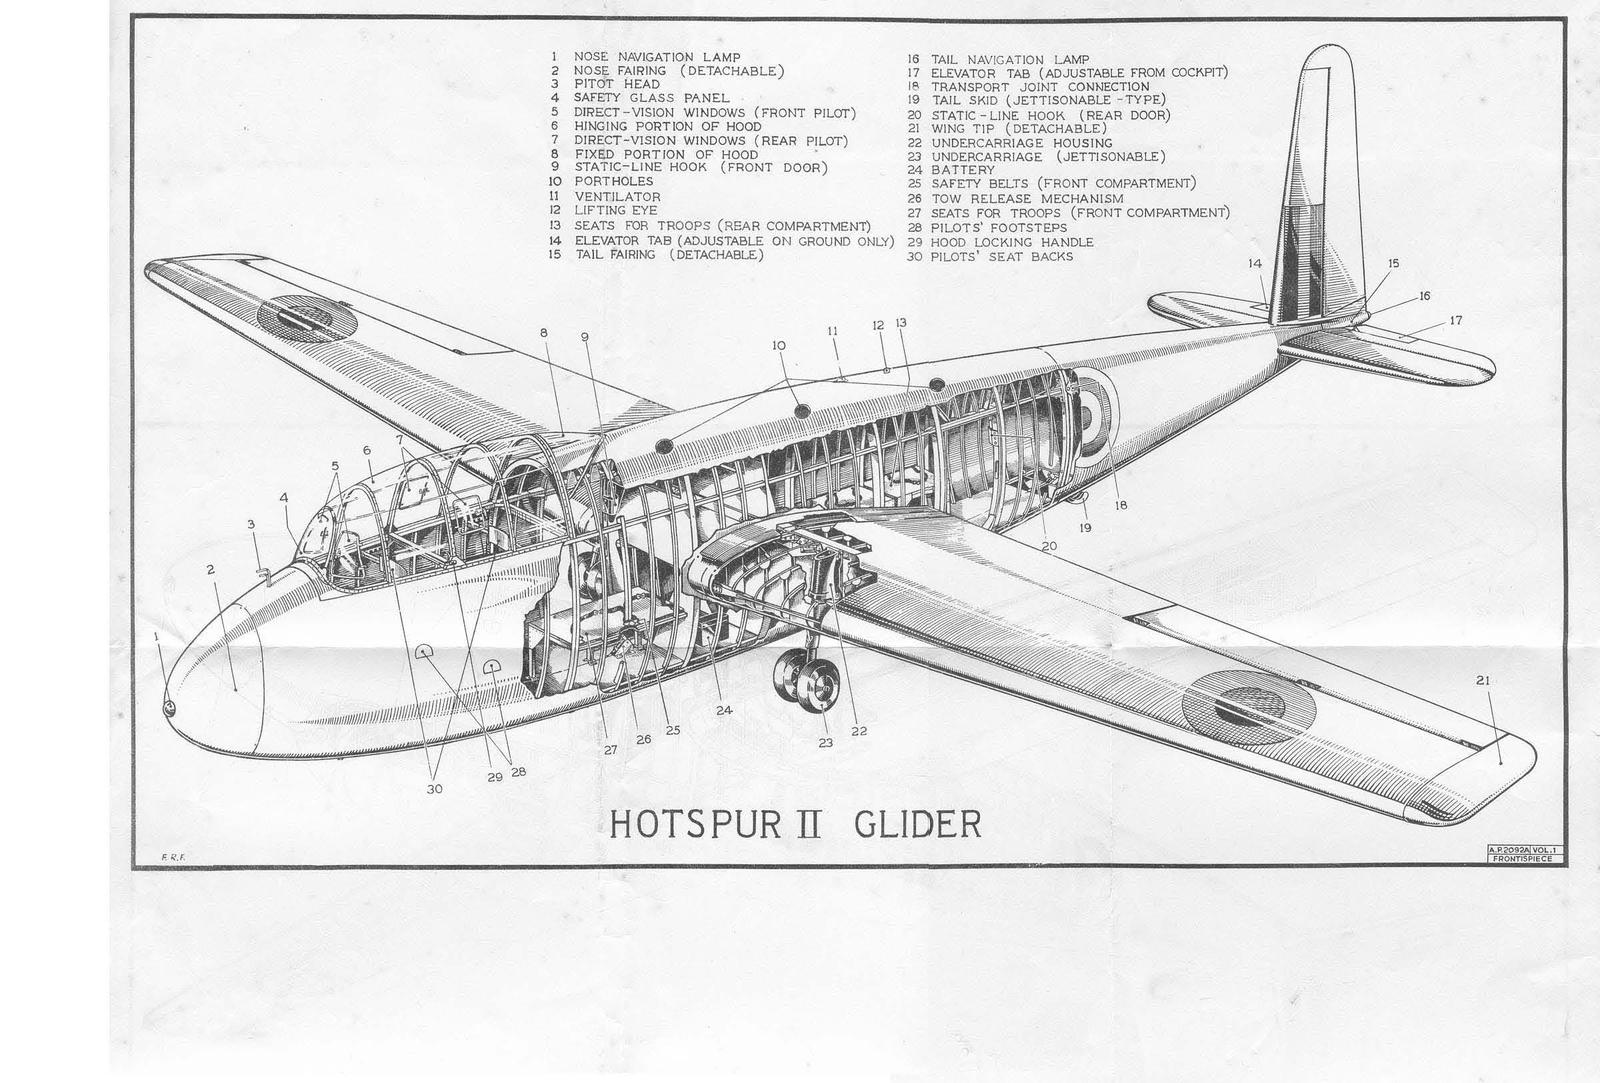 Attachment browser: Hotspur II Glider cutaway drawing.pdf